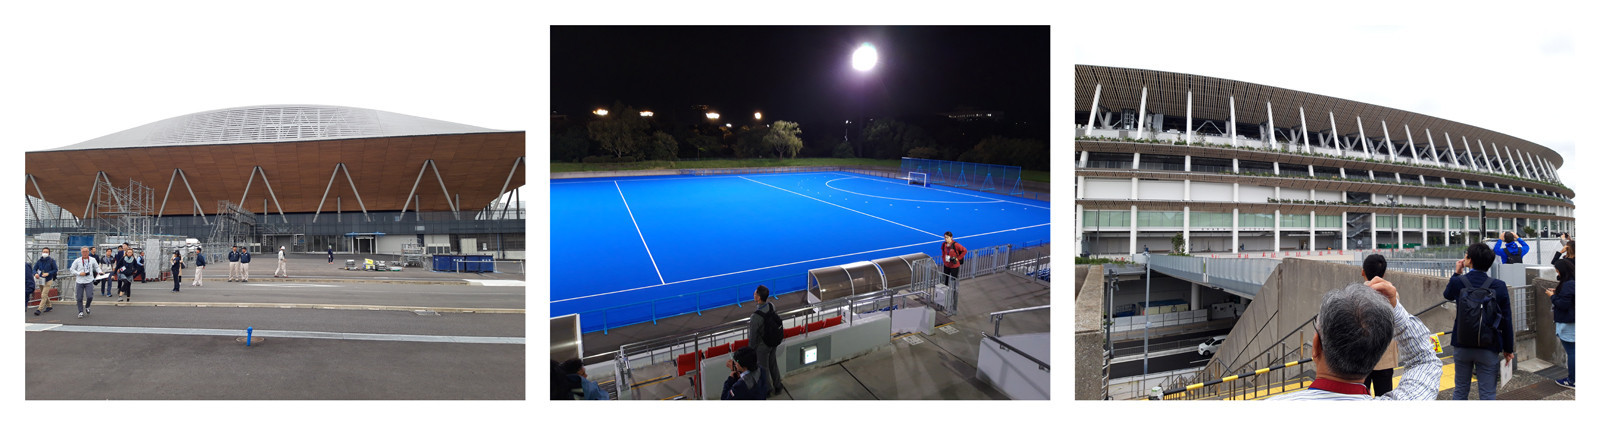 Updates were provided on construction at Ariake Gymnastics Centre, Oi Hockey Stadium and the Olympic New National Stadium during the venue tours ©ITG